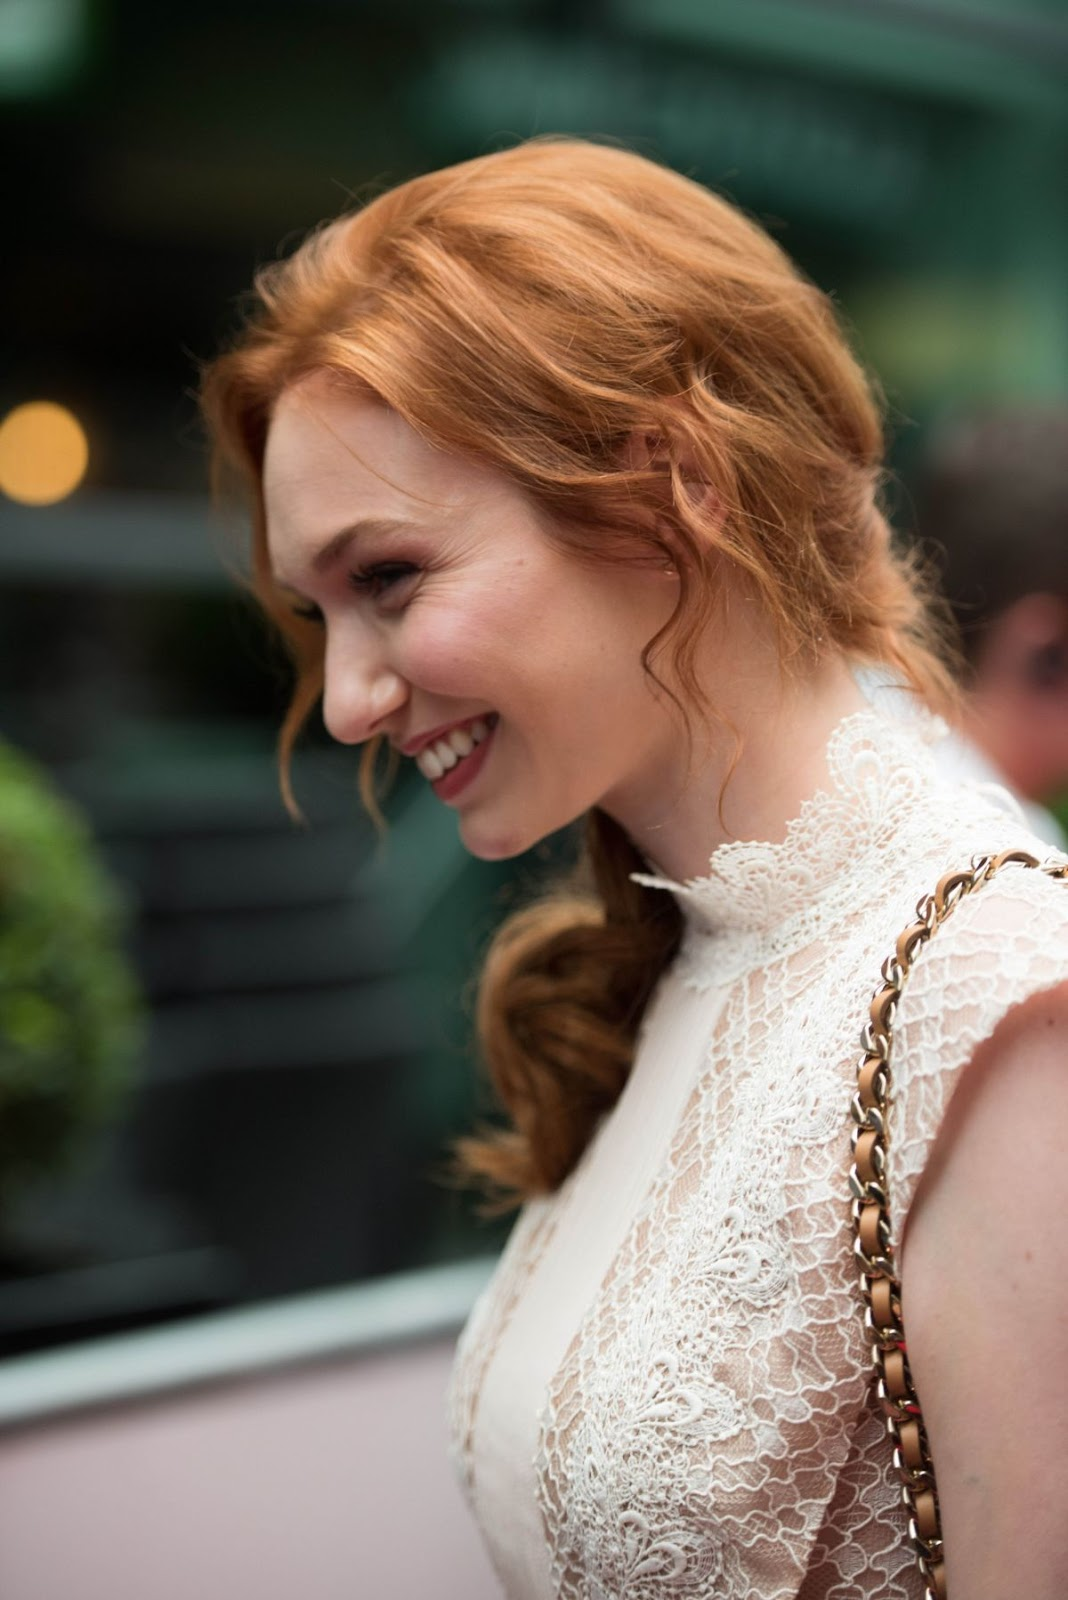 Full 4K Photos of 'Poldark' actress Eleanor Tomlinson At Poldark Press Screening In Cornwall